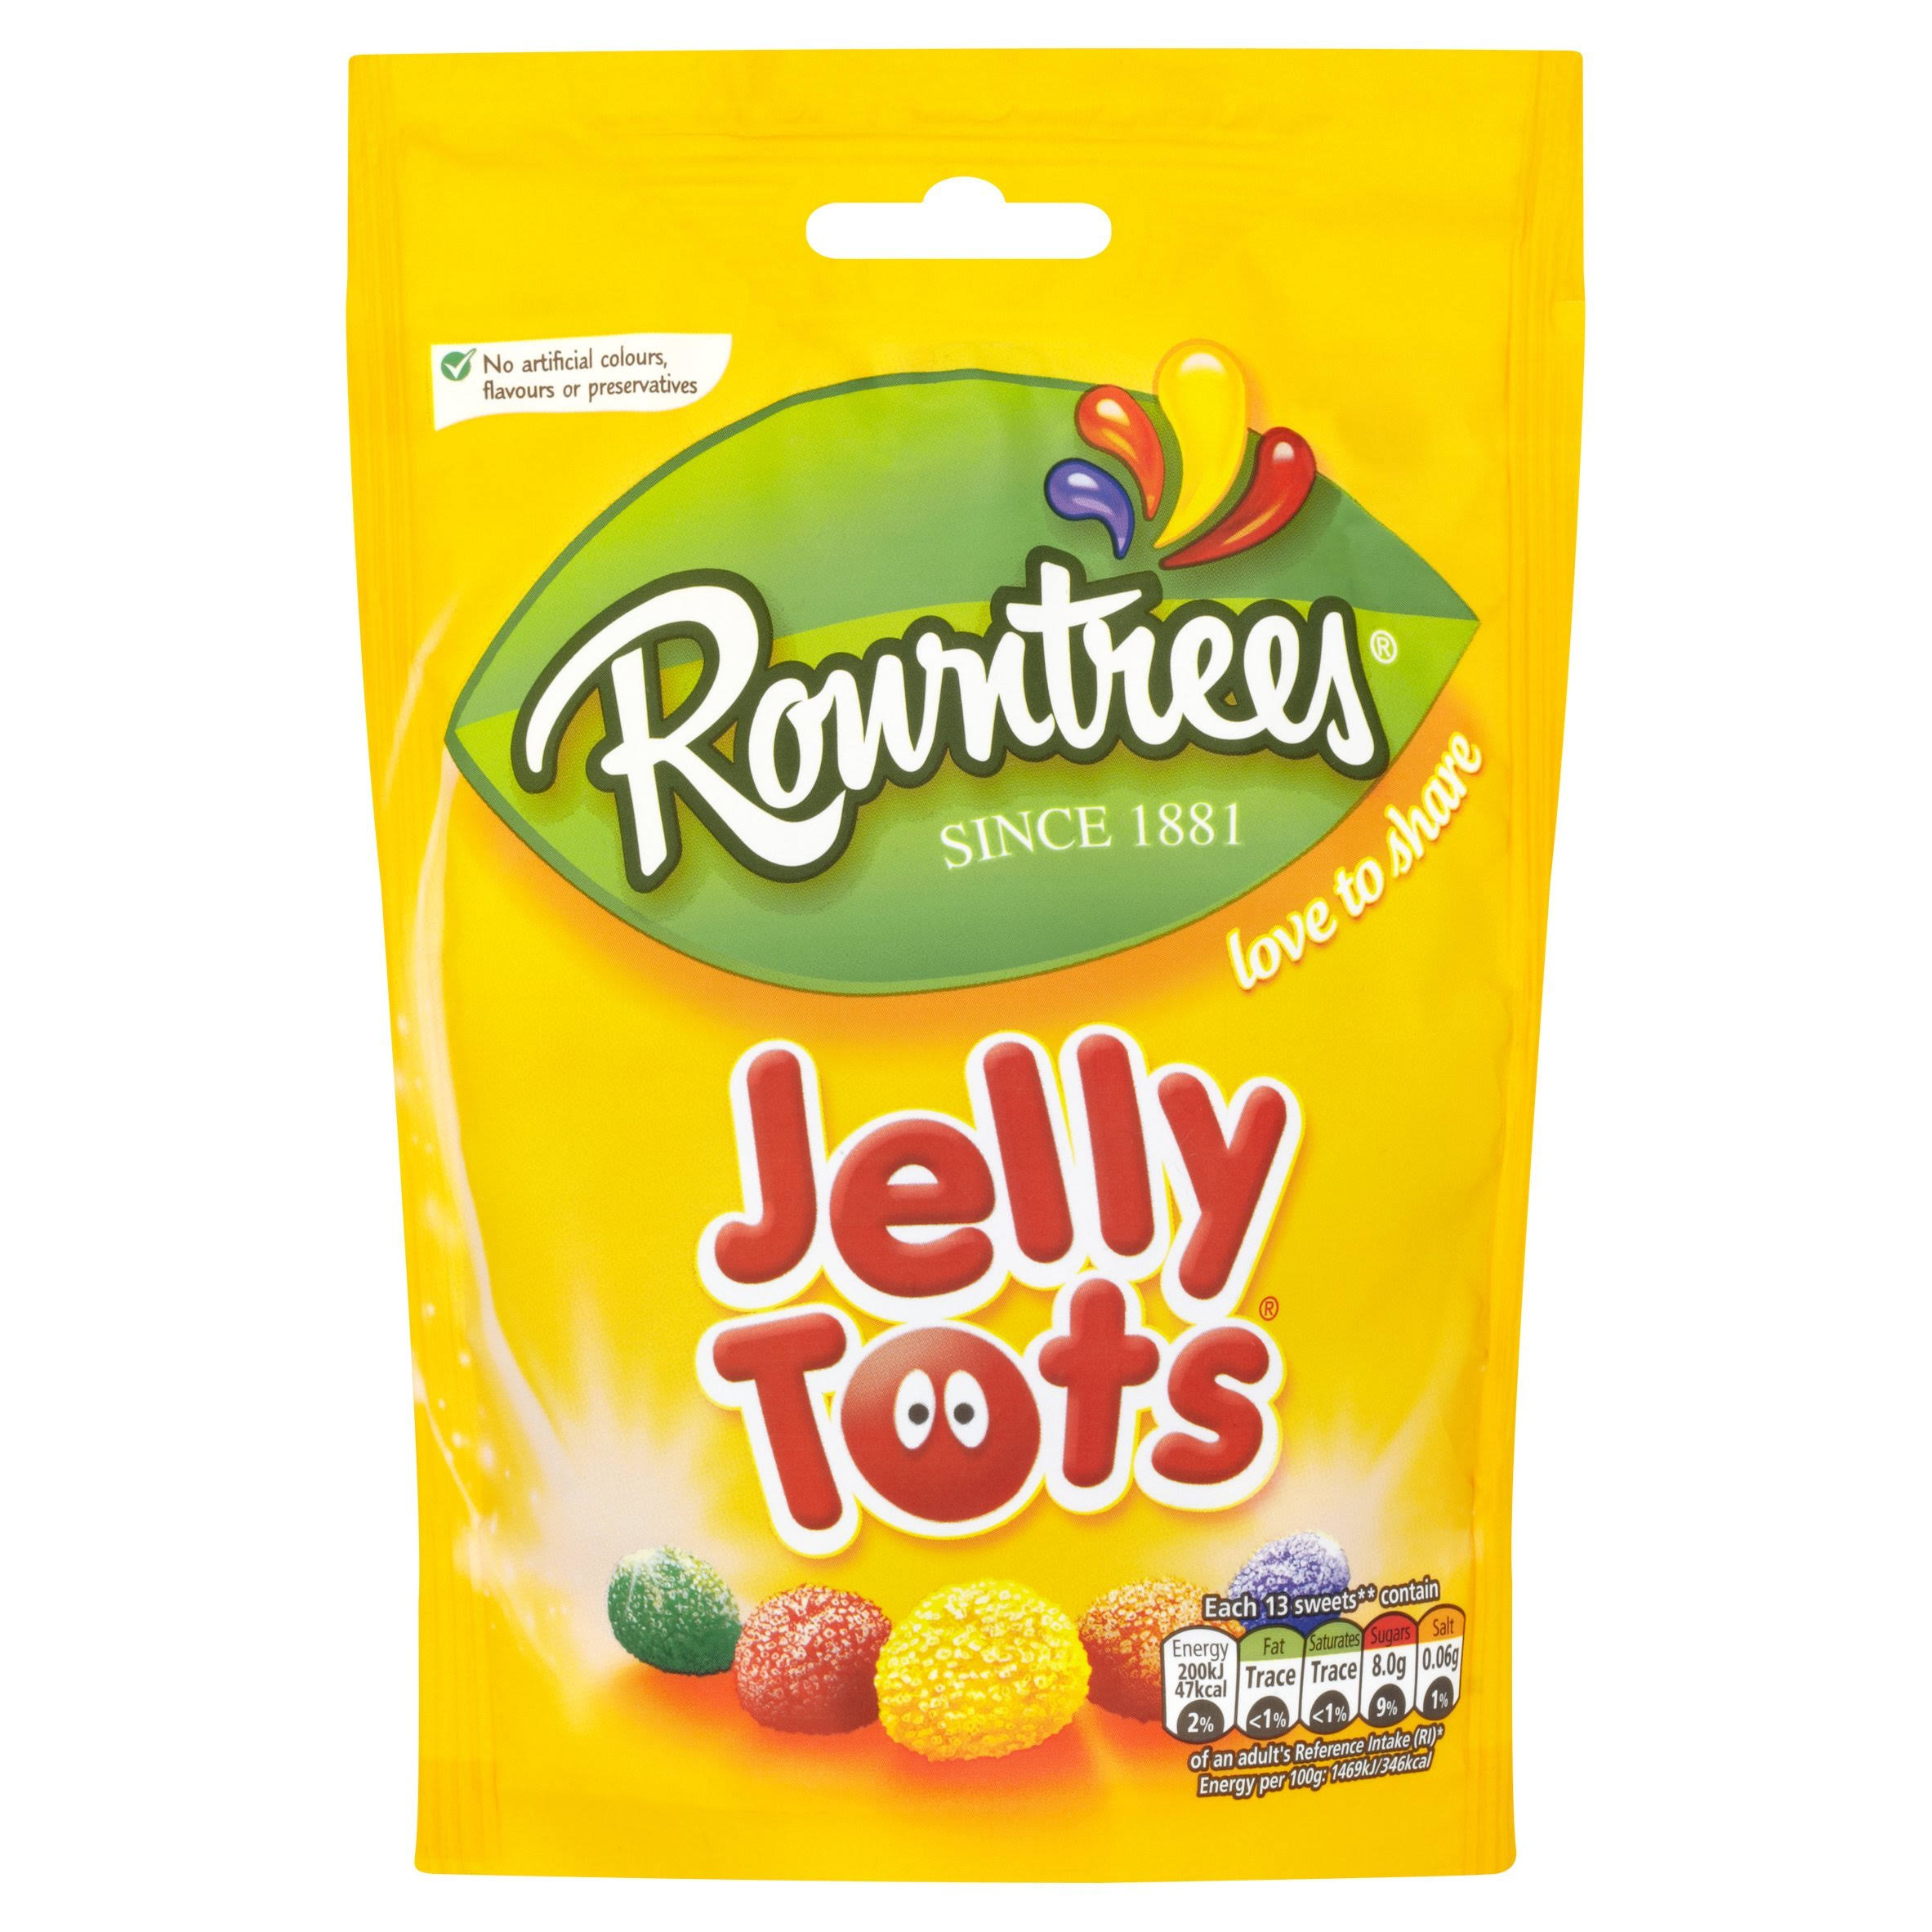 Rowntrees Sweet Jelly Tots - 150g